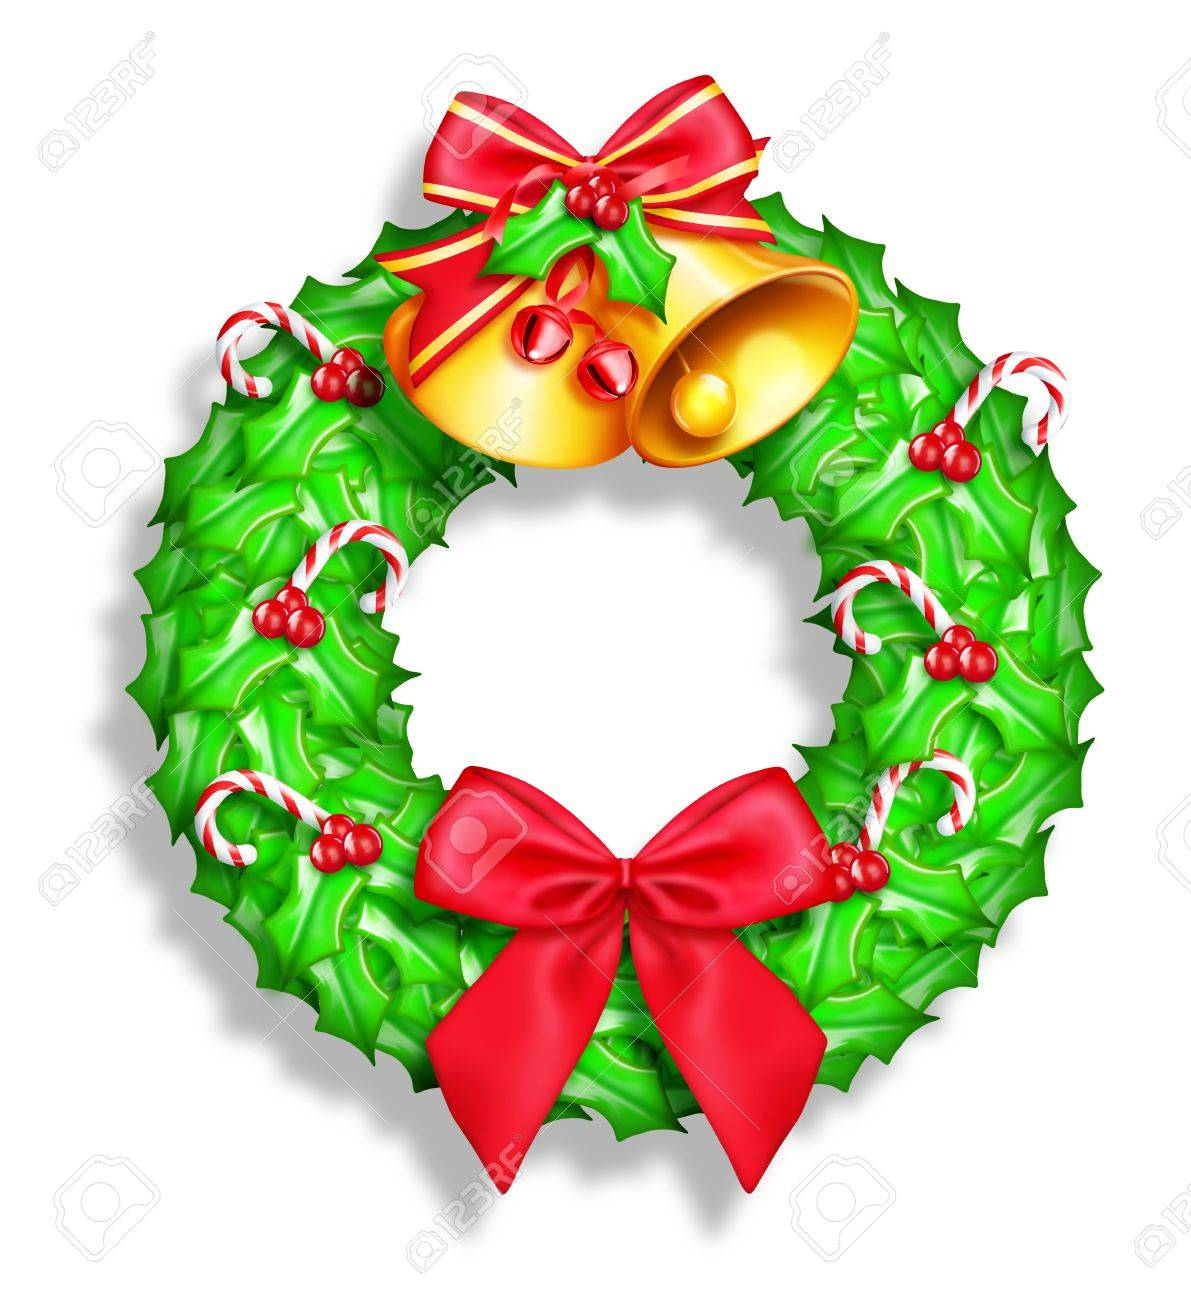 Whimsical Cartoon Christmas Wreath Stock Photo Picture And Royalty